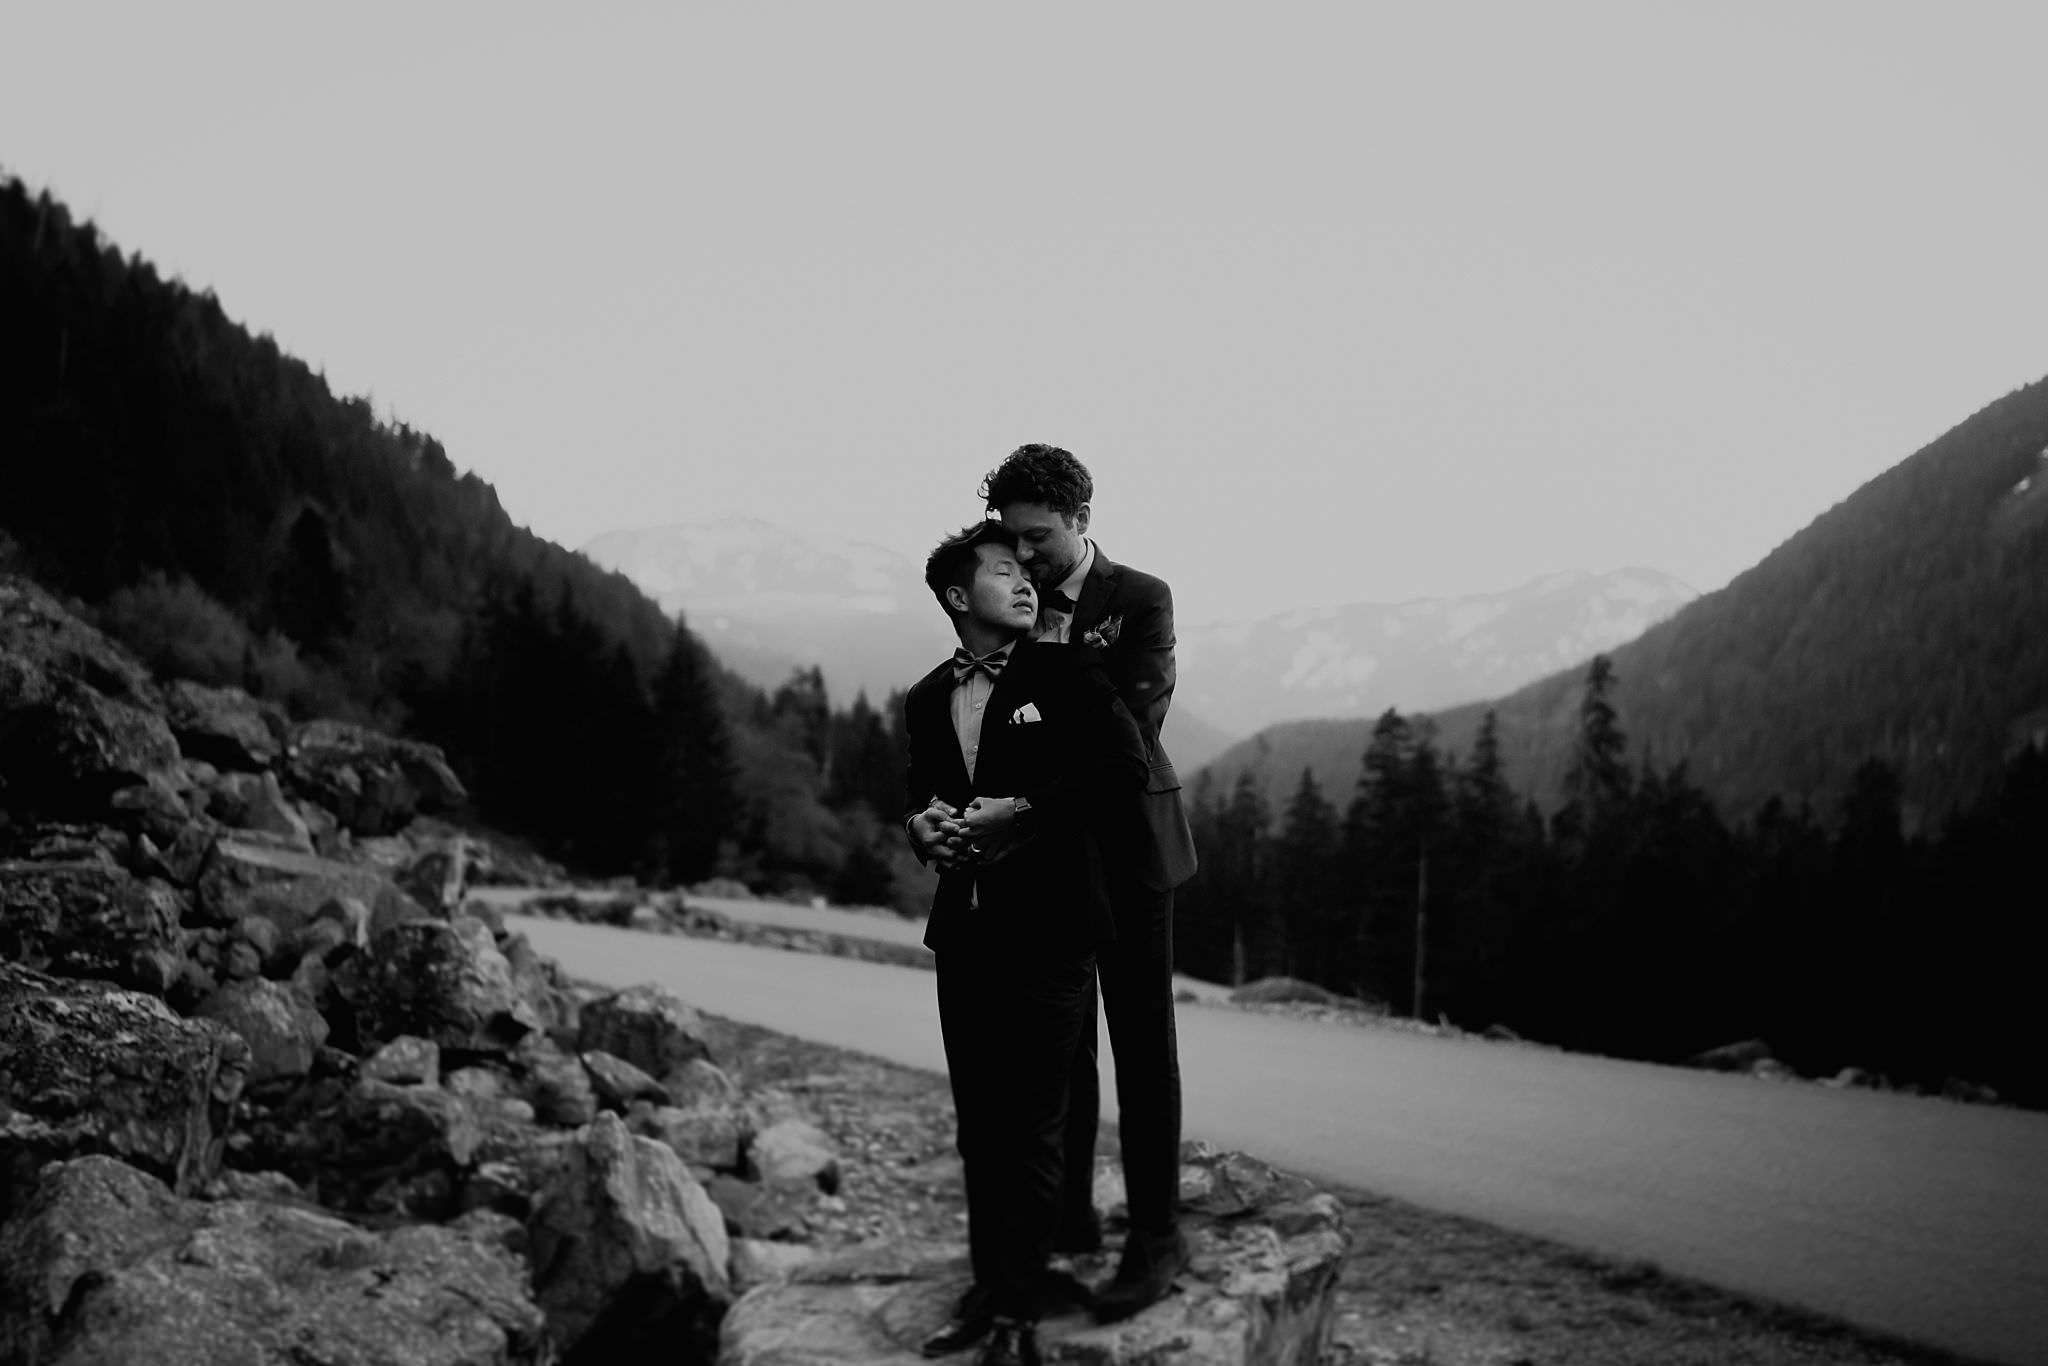 Gold-Creek-Pond-Elopement-Pacific-Northwest-Washington-Mountain-LGBT-Gay-Wedding_0076.jpg